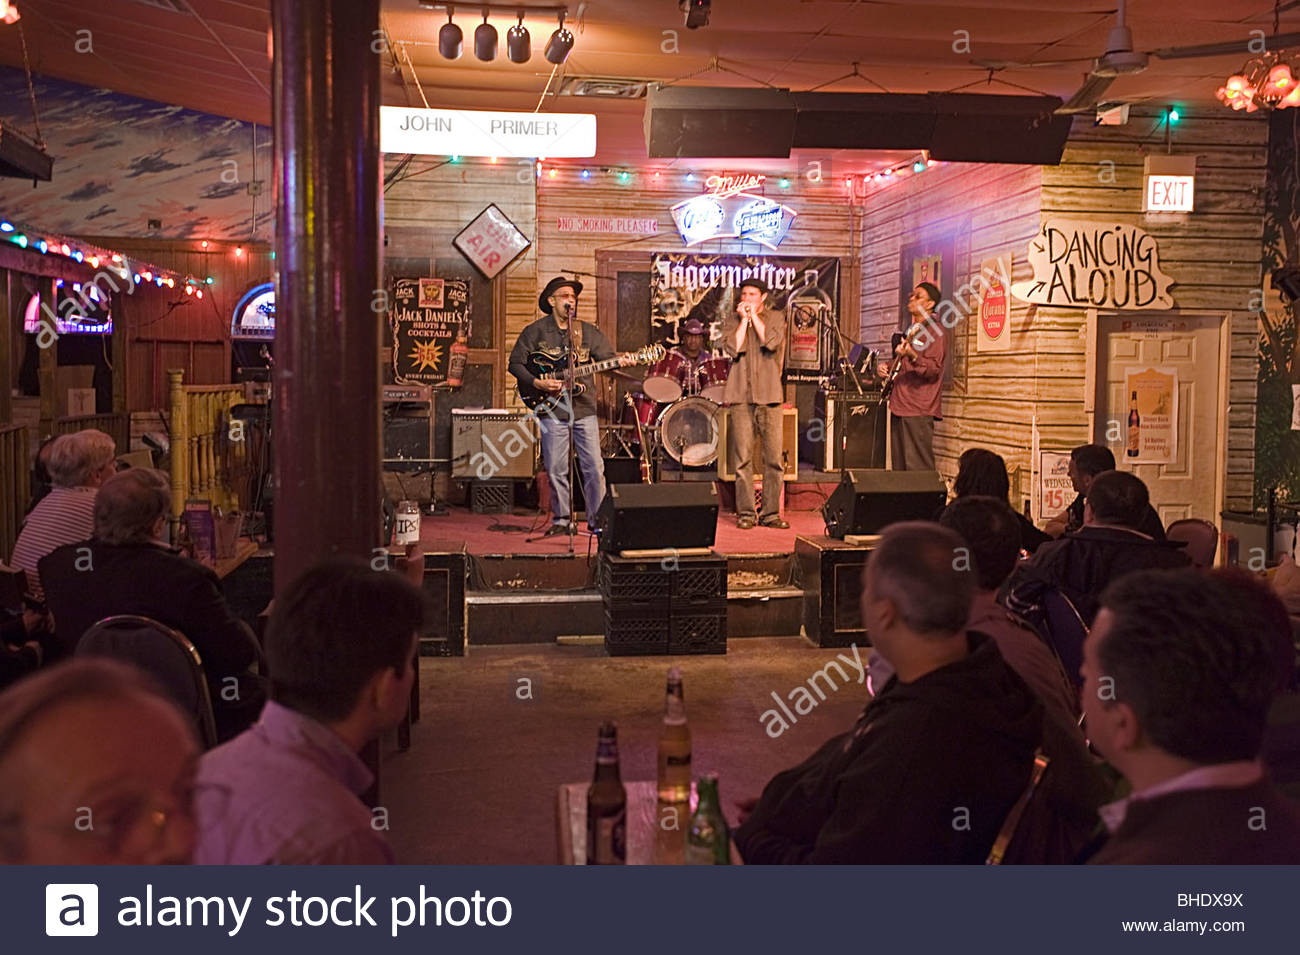 John Primer Performing At The Famous Quot Kingston Mines Quot Blues Club In Stock Photo Royalty Free